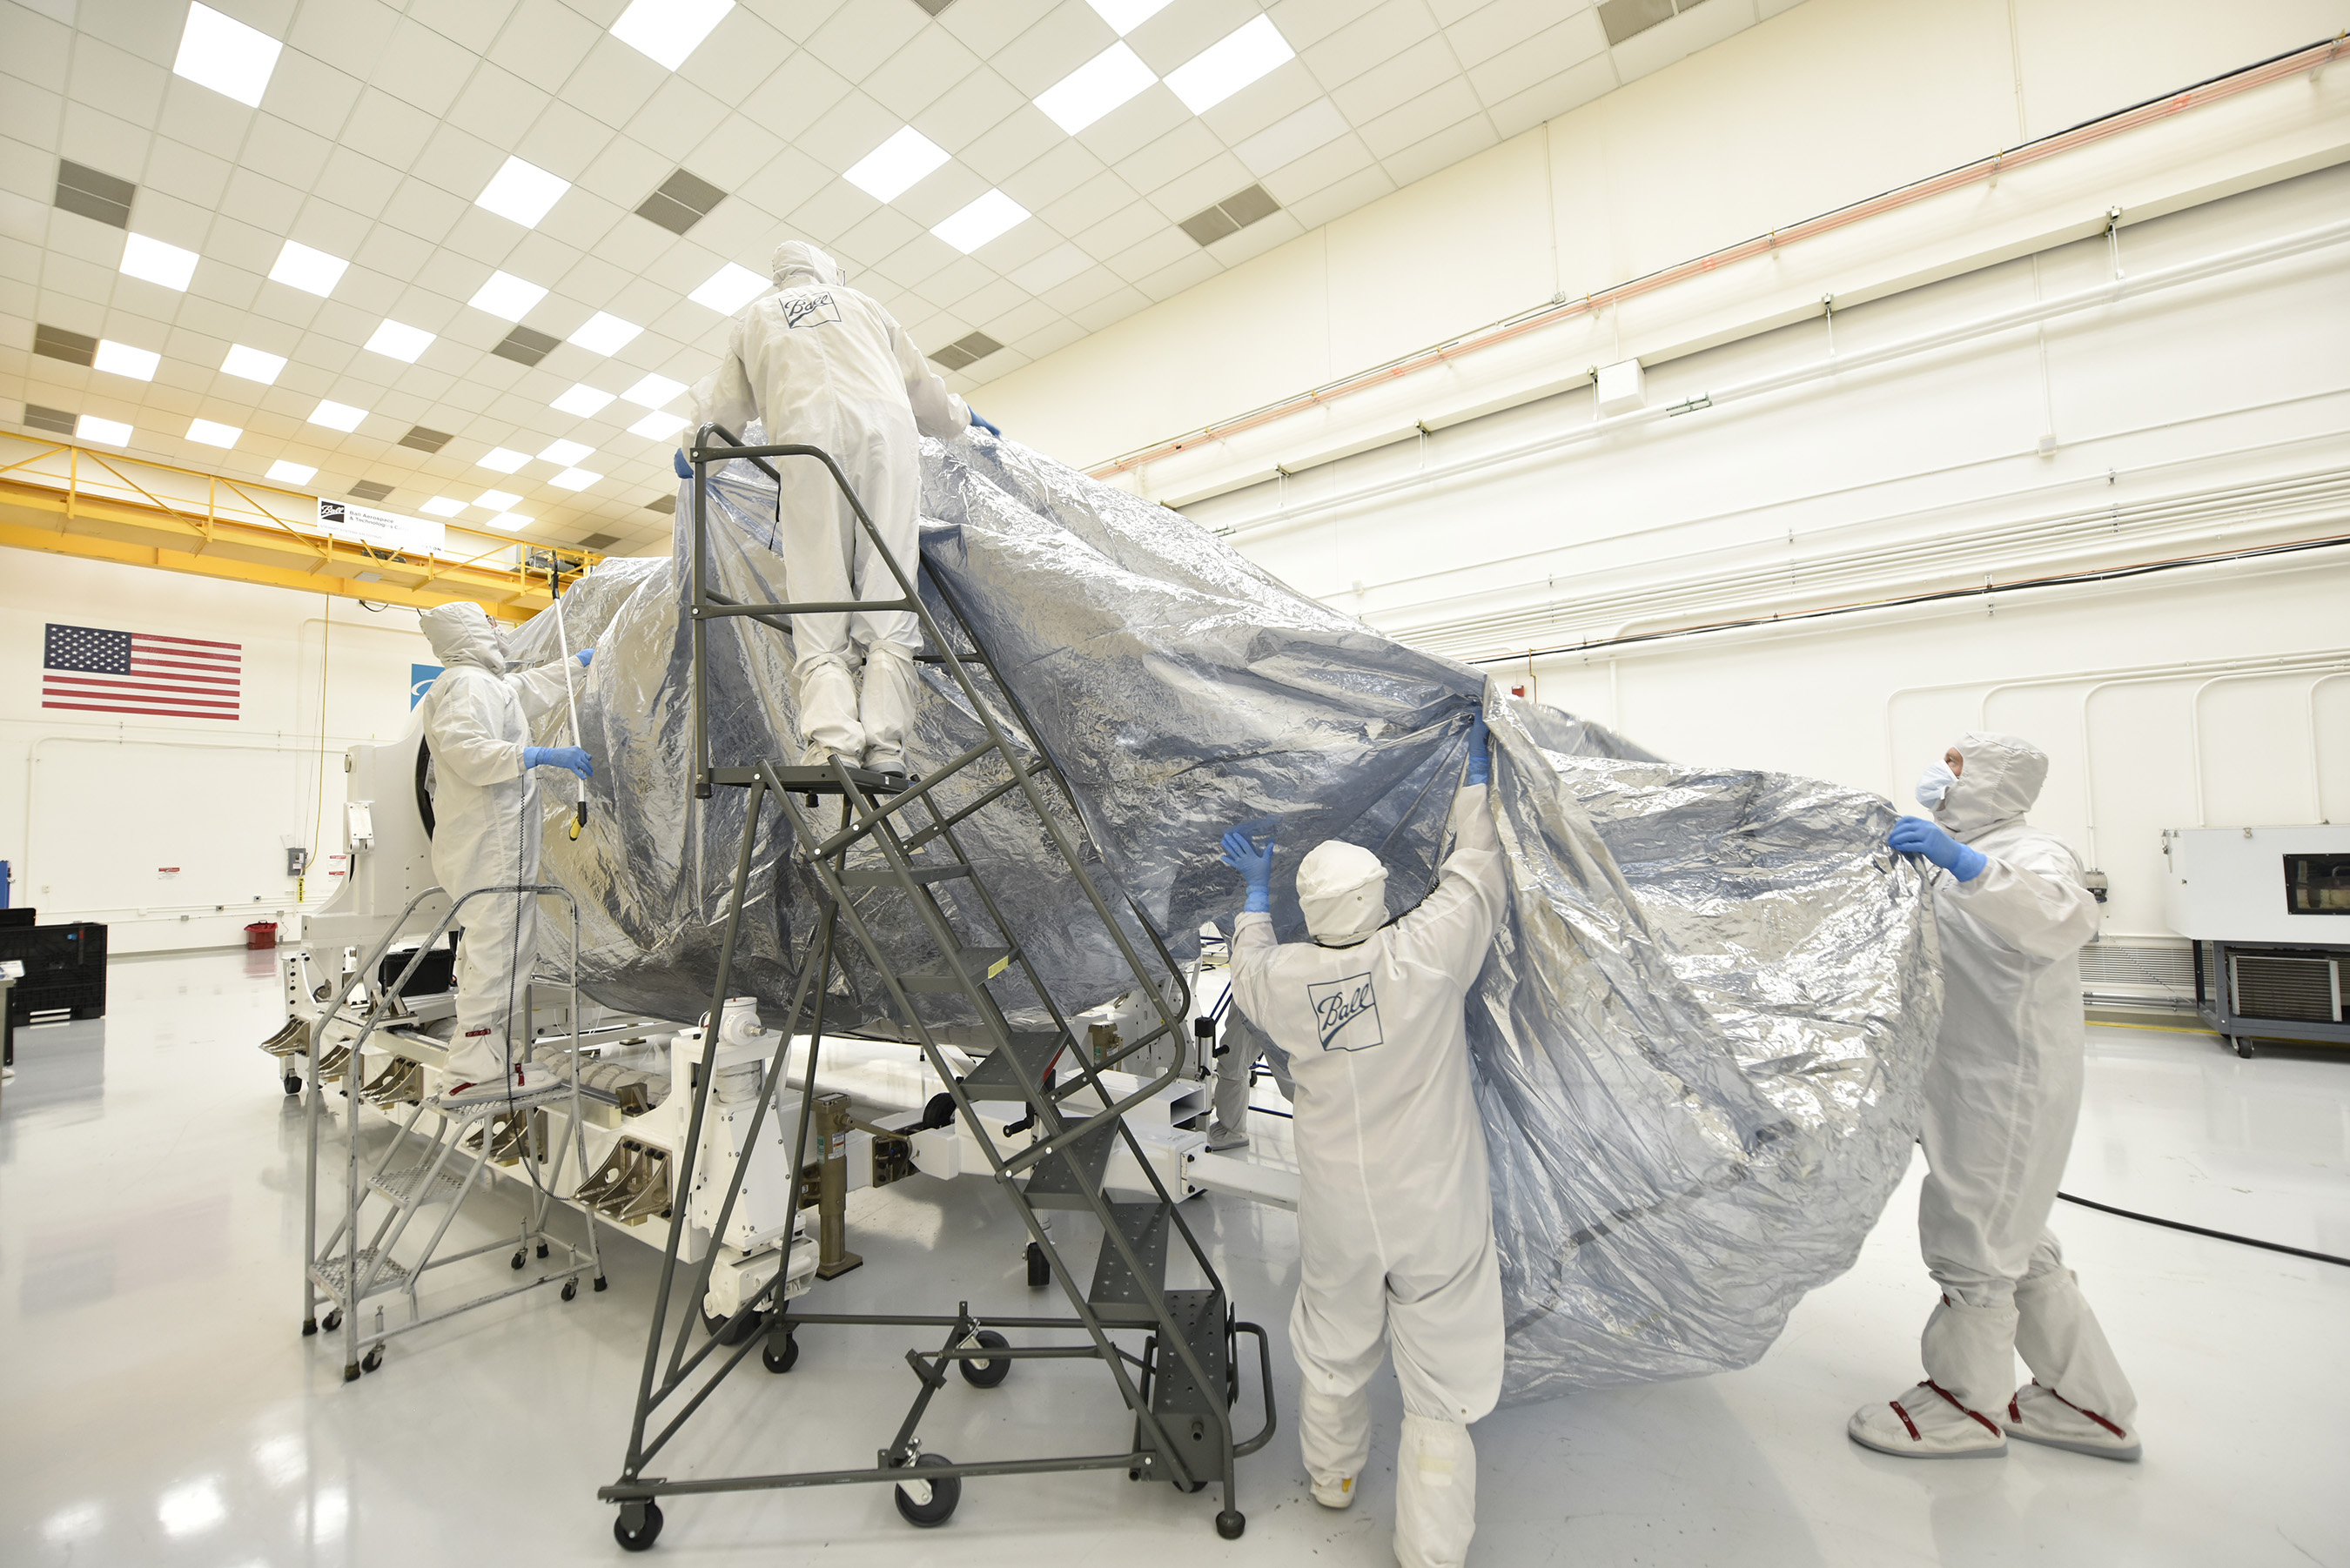 The Ball Aerospace team begins bagging the JPSS-1 satellite with protective wrapping in preparation for its shipment from the Ball Aerospace cleanroom in Boulder, Colo., to Vandenberg Air Force Base for final launch preparations. CREDIT: Ball Aerospace.